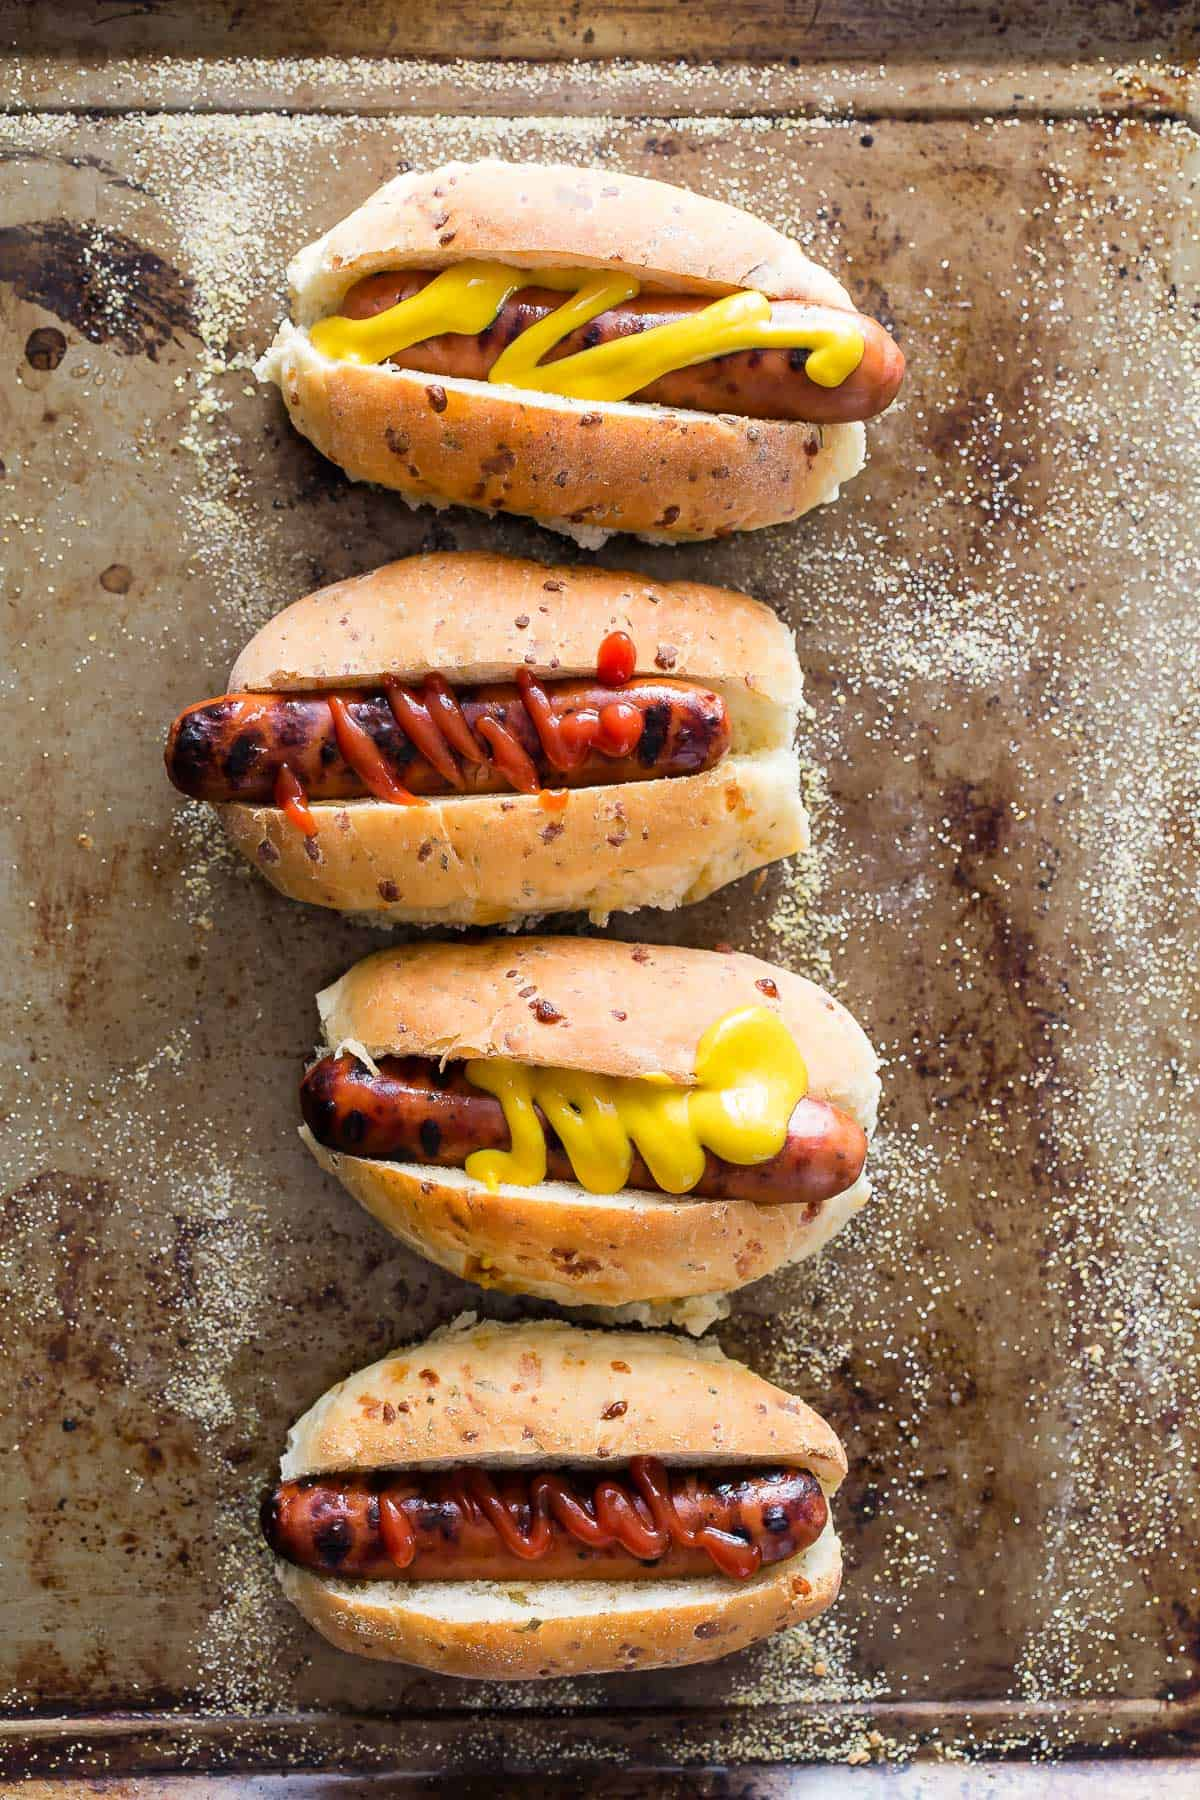 Hot Dog Buns Fall Apart